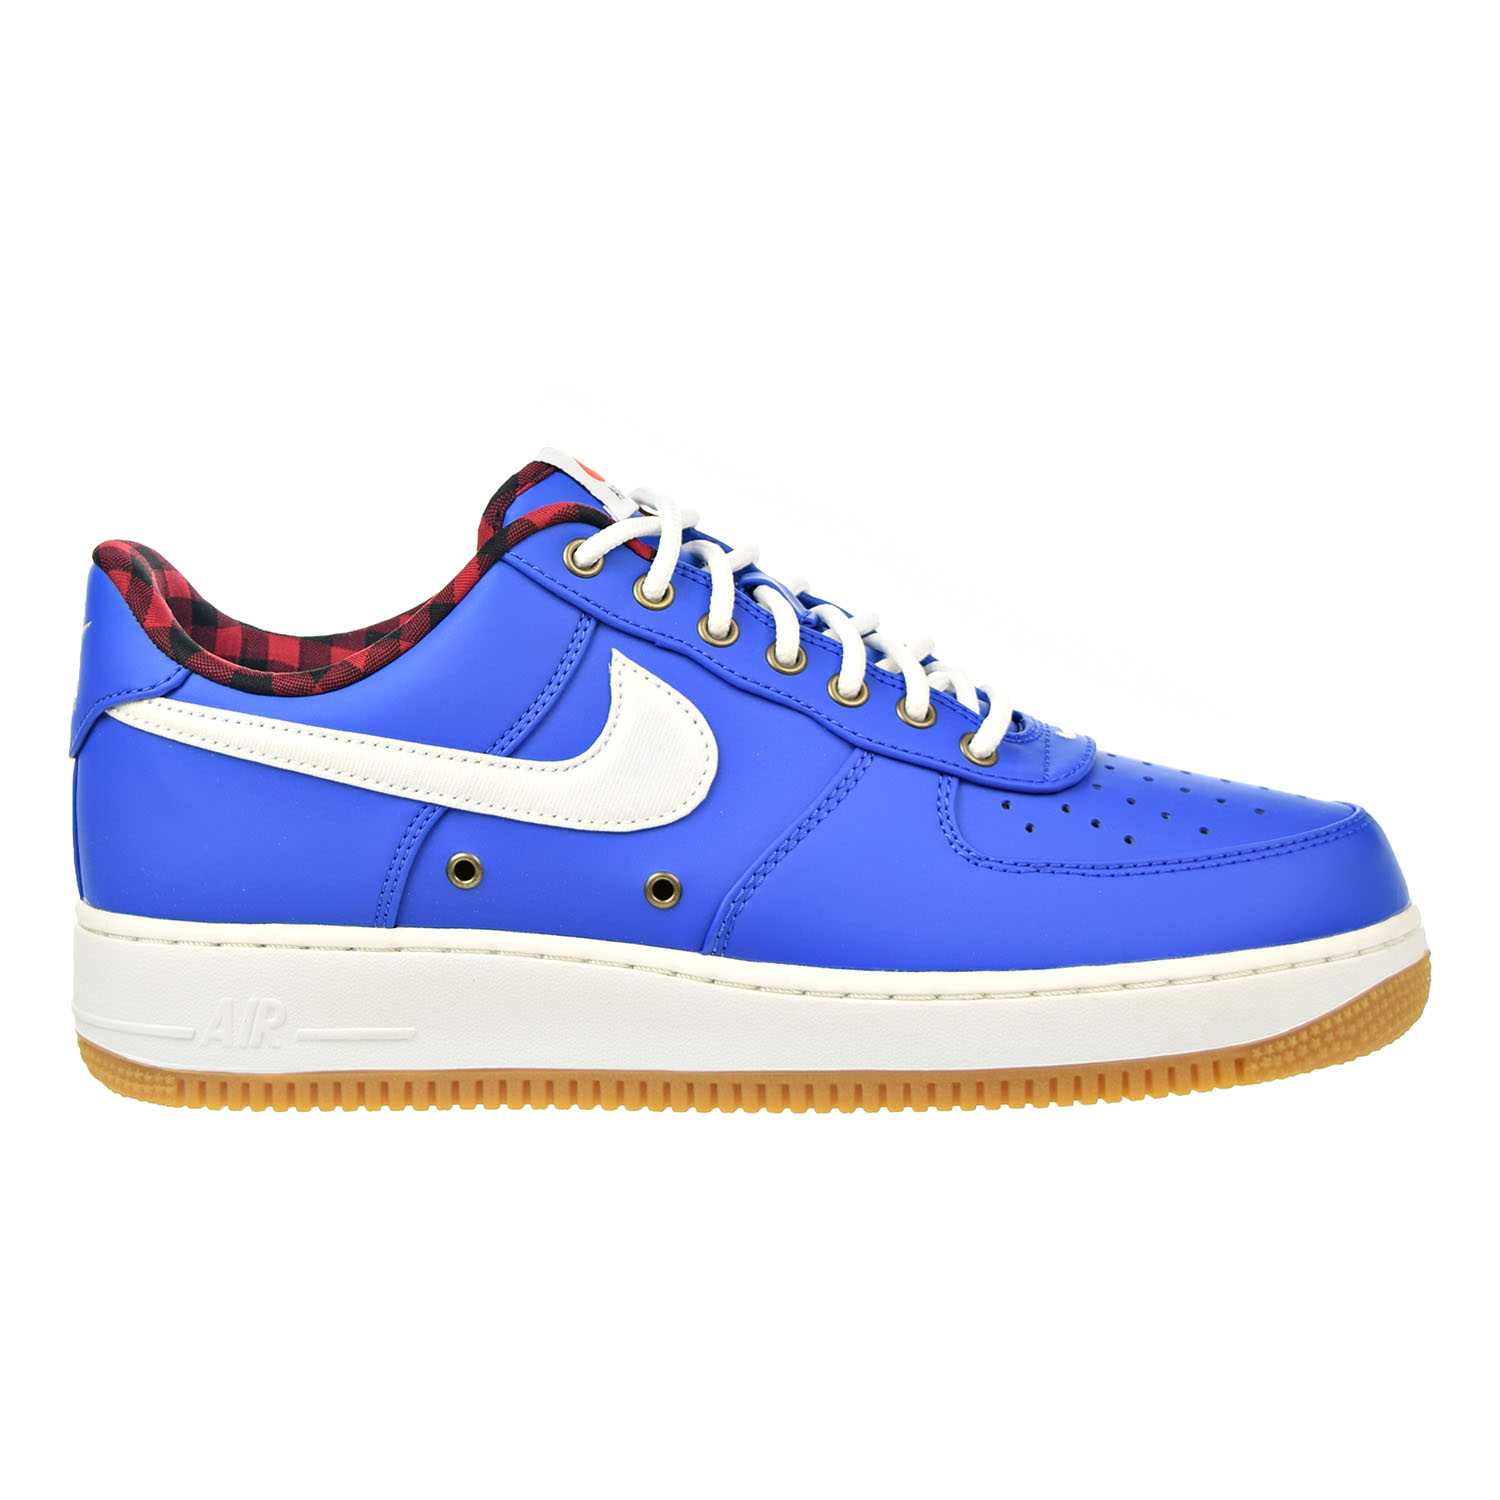 Nike Air Force 1 '07 LV8 Men's Shoes Hyper Coblat/Sail/To...